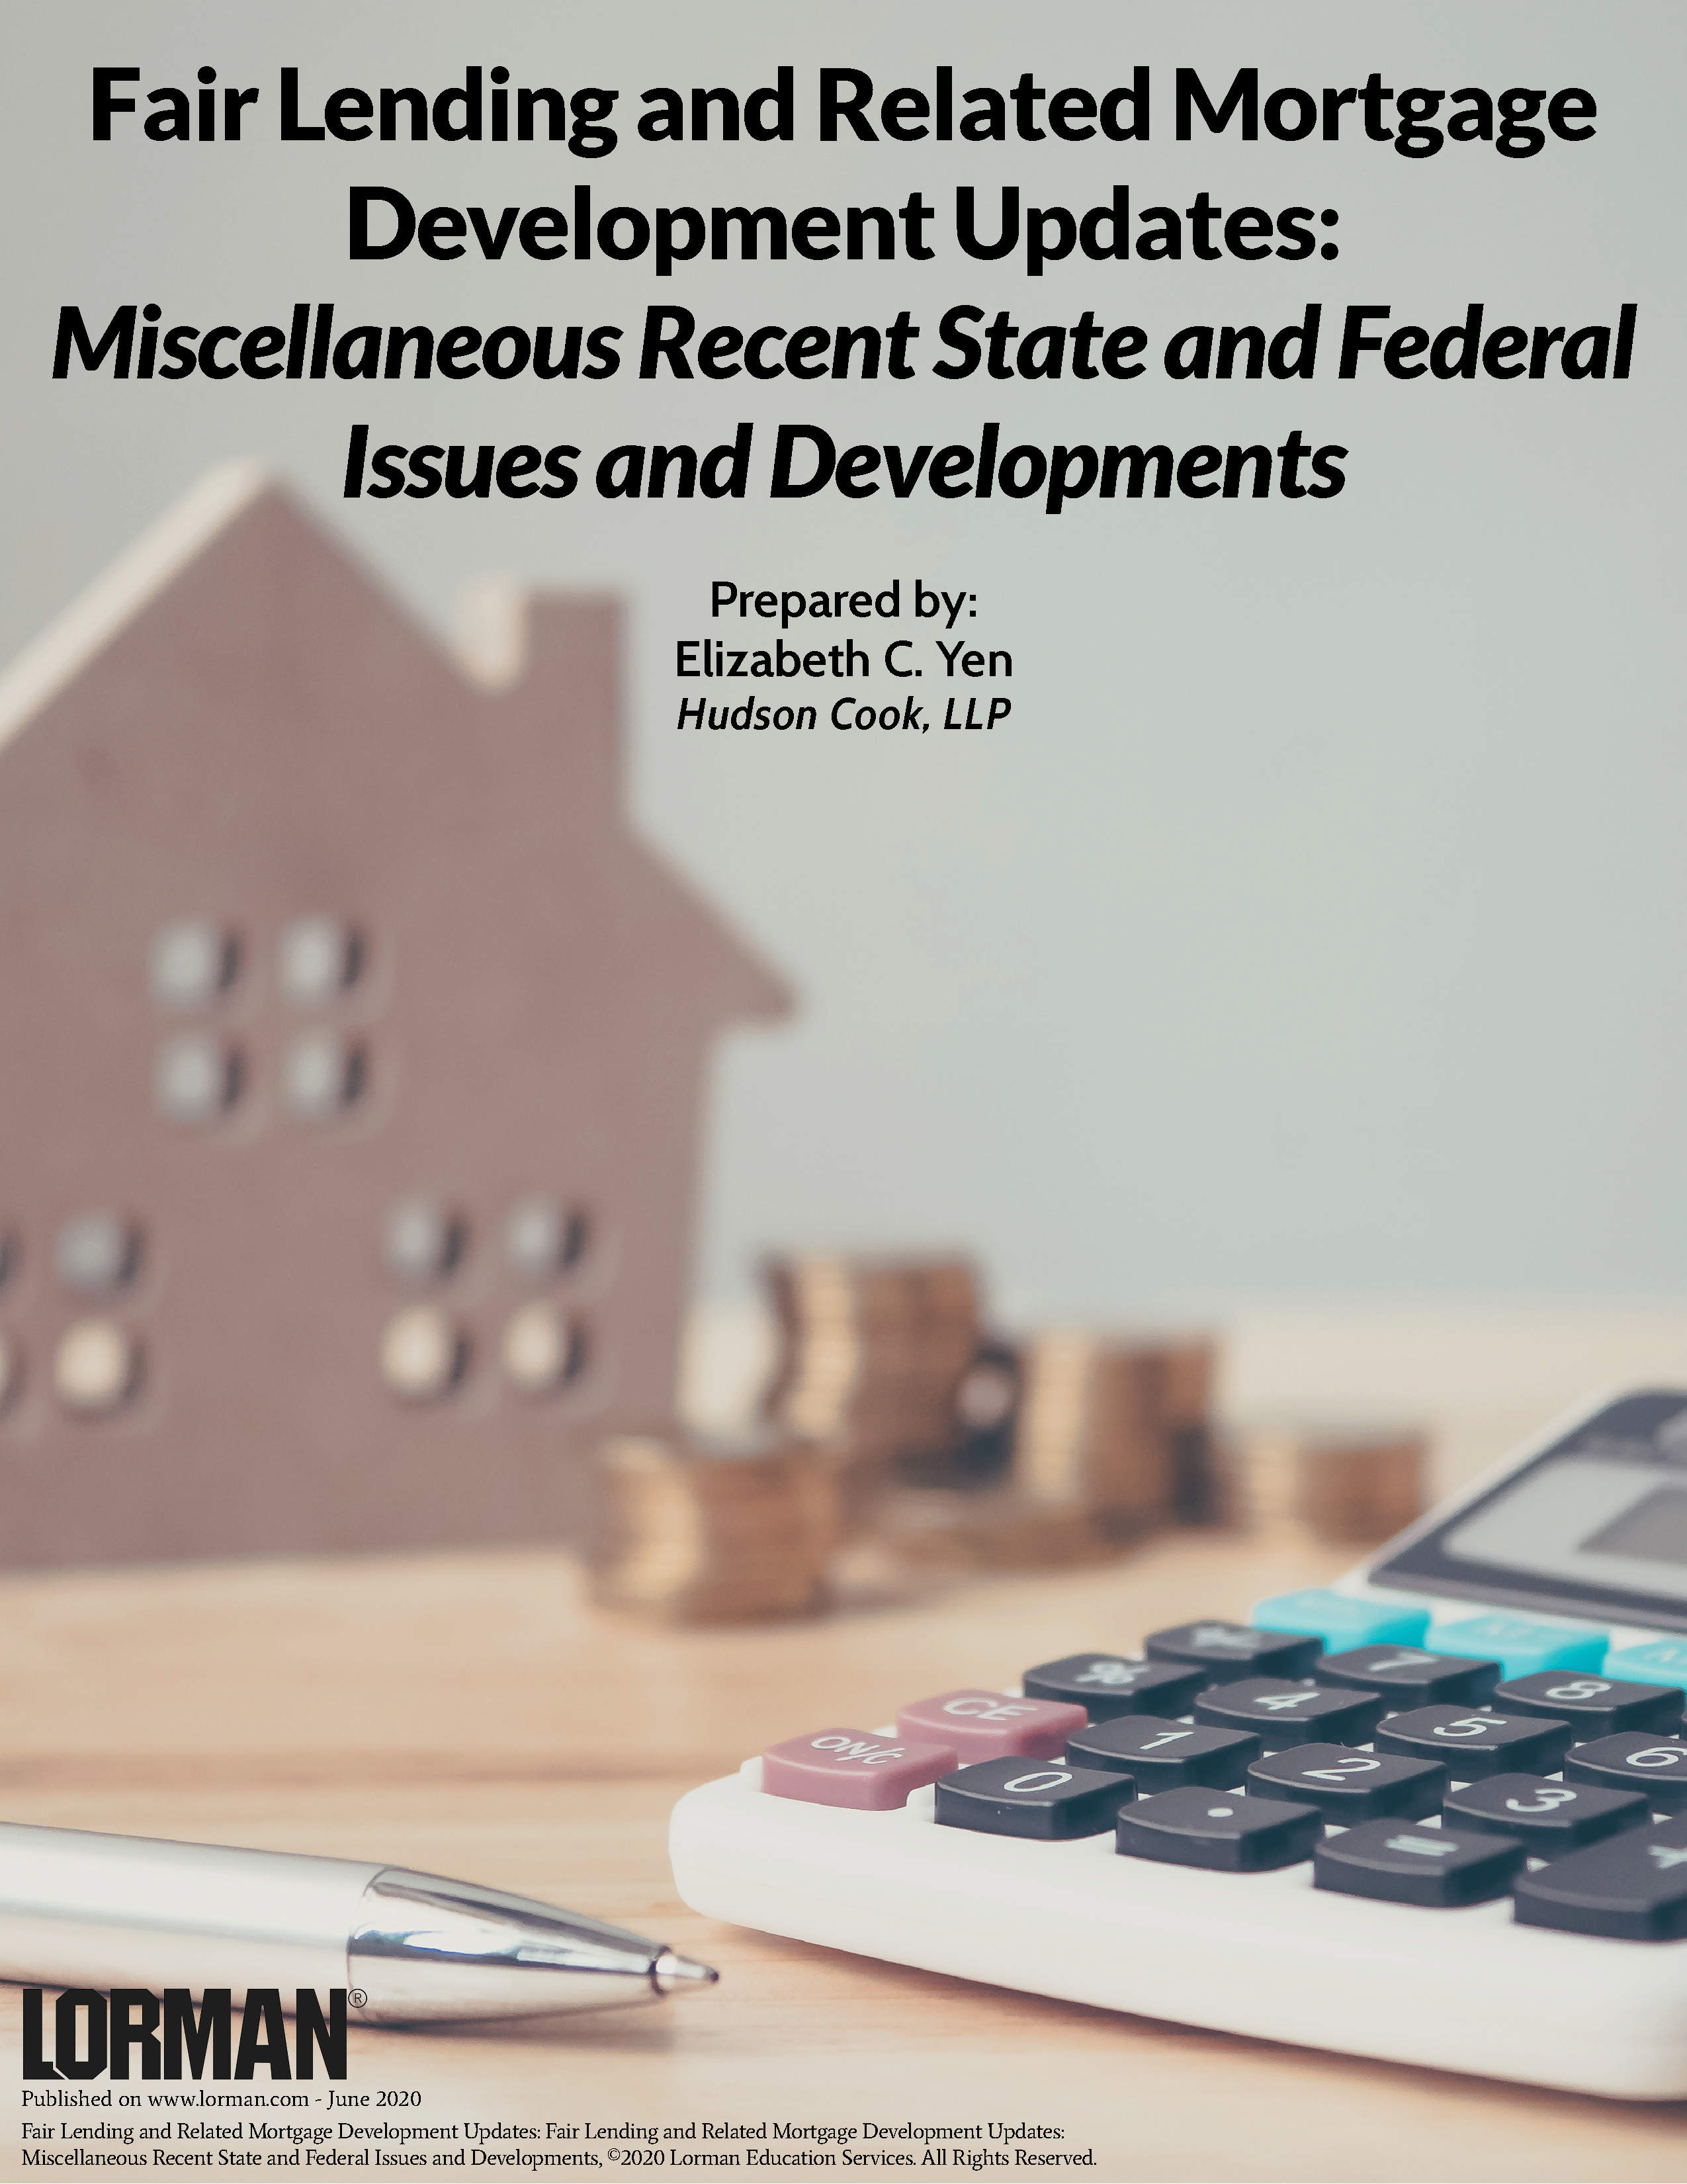 Fair Lending and Related Mortgage Development Updates